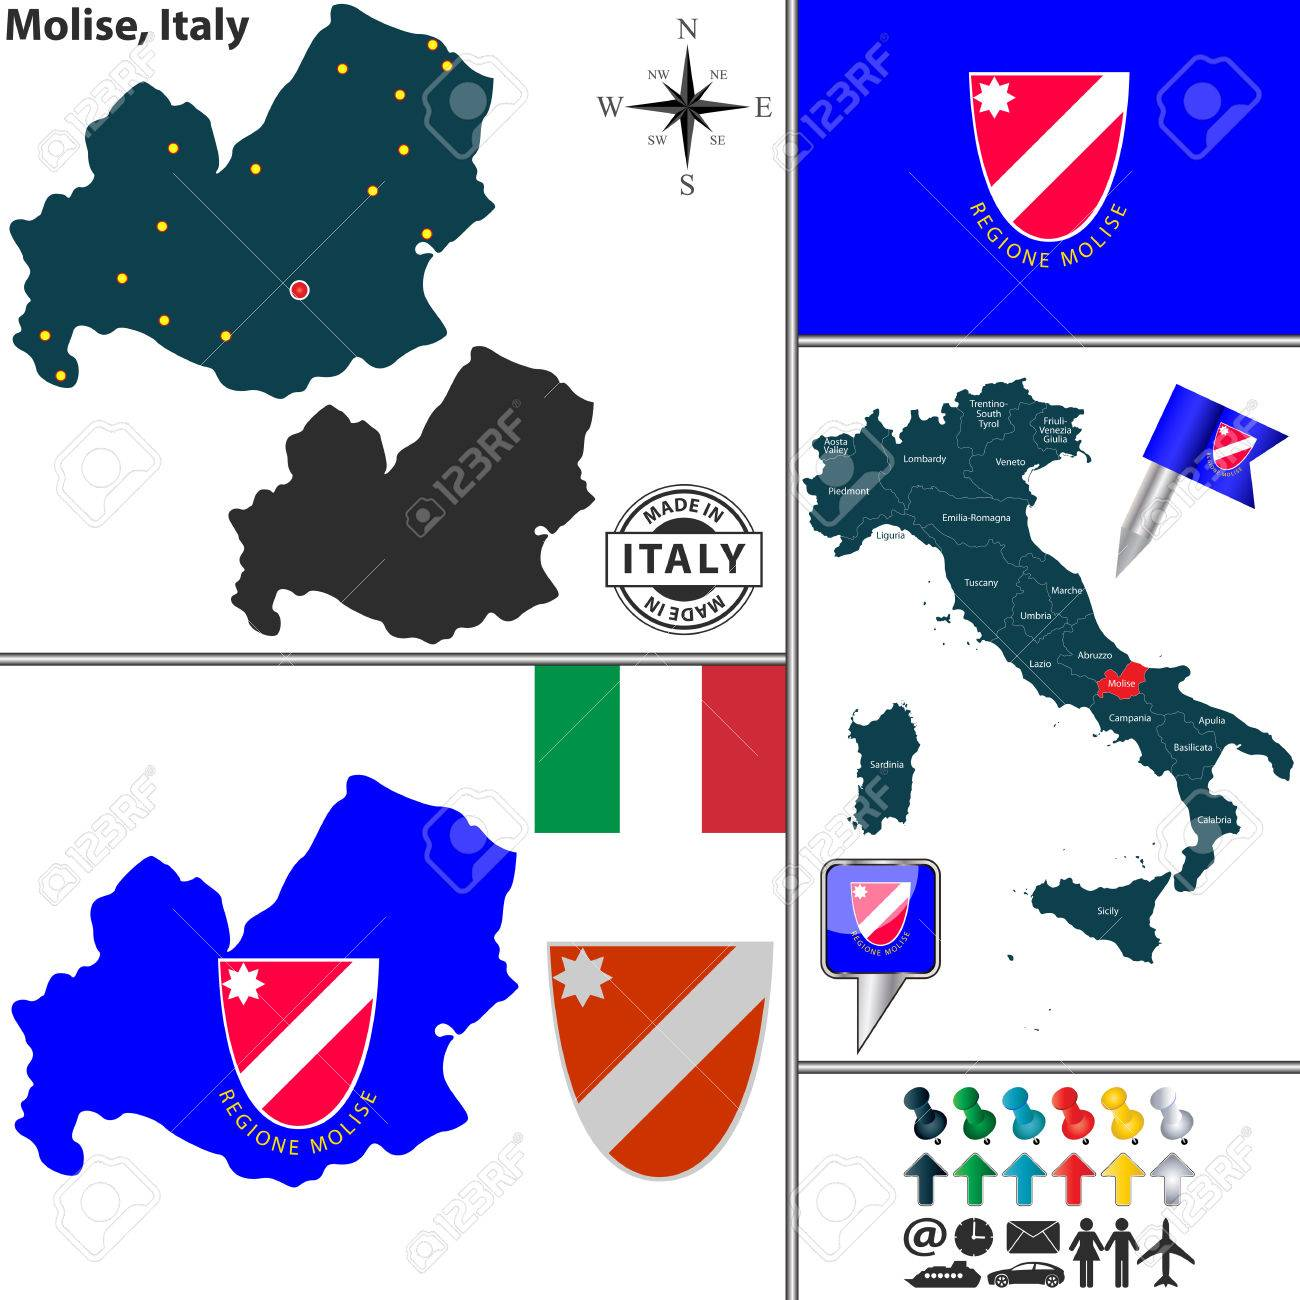 Vector Map Of Region Molise With Coat Of Arms And Location On